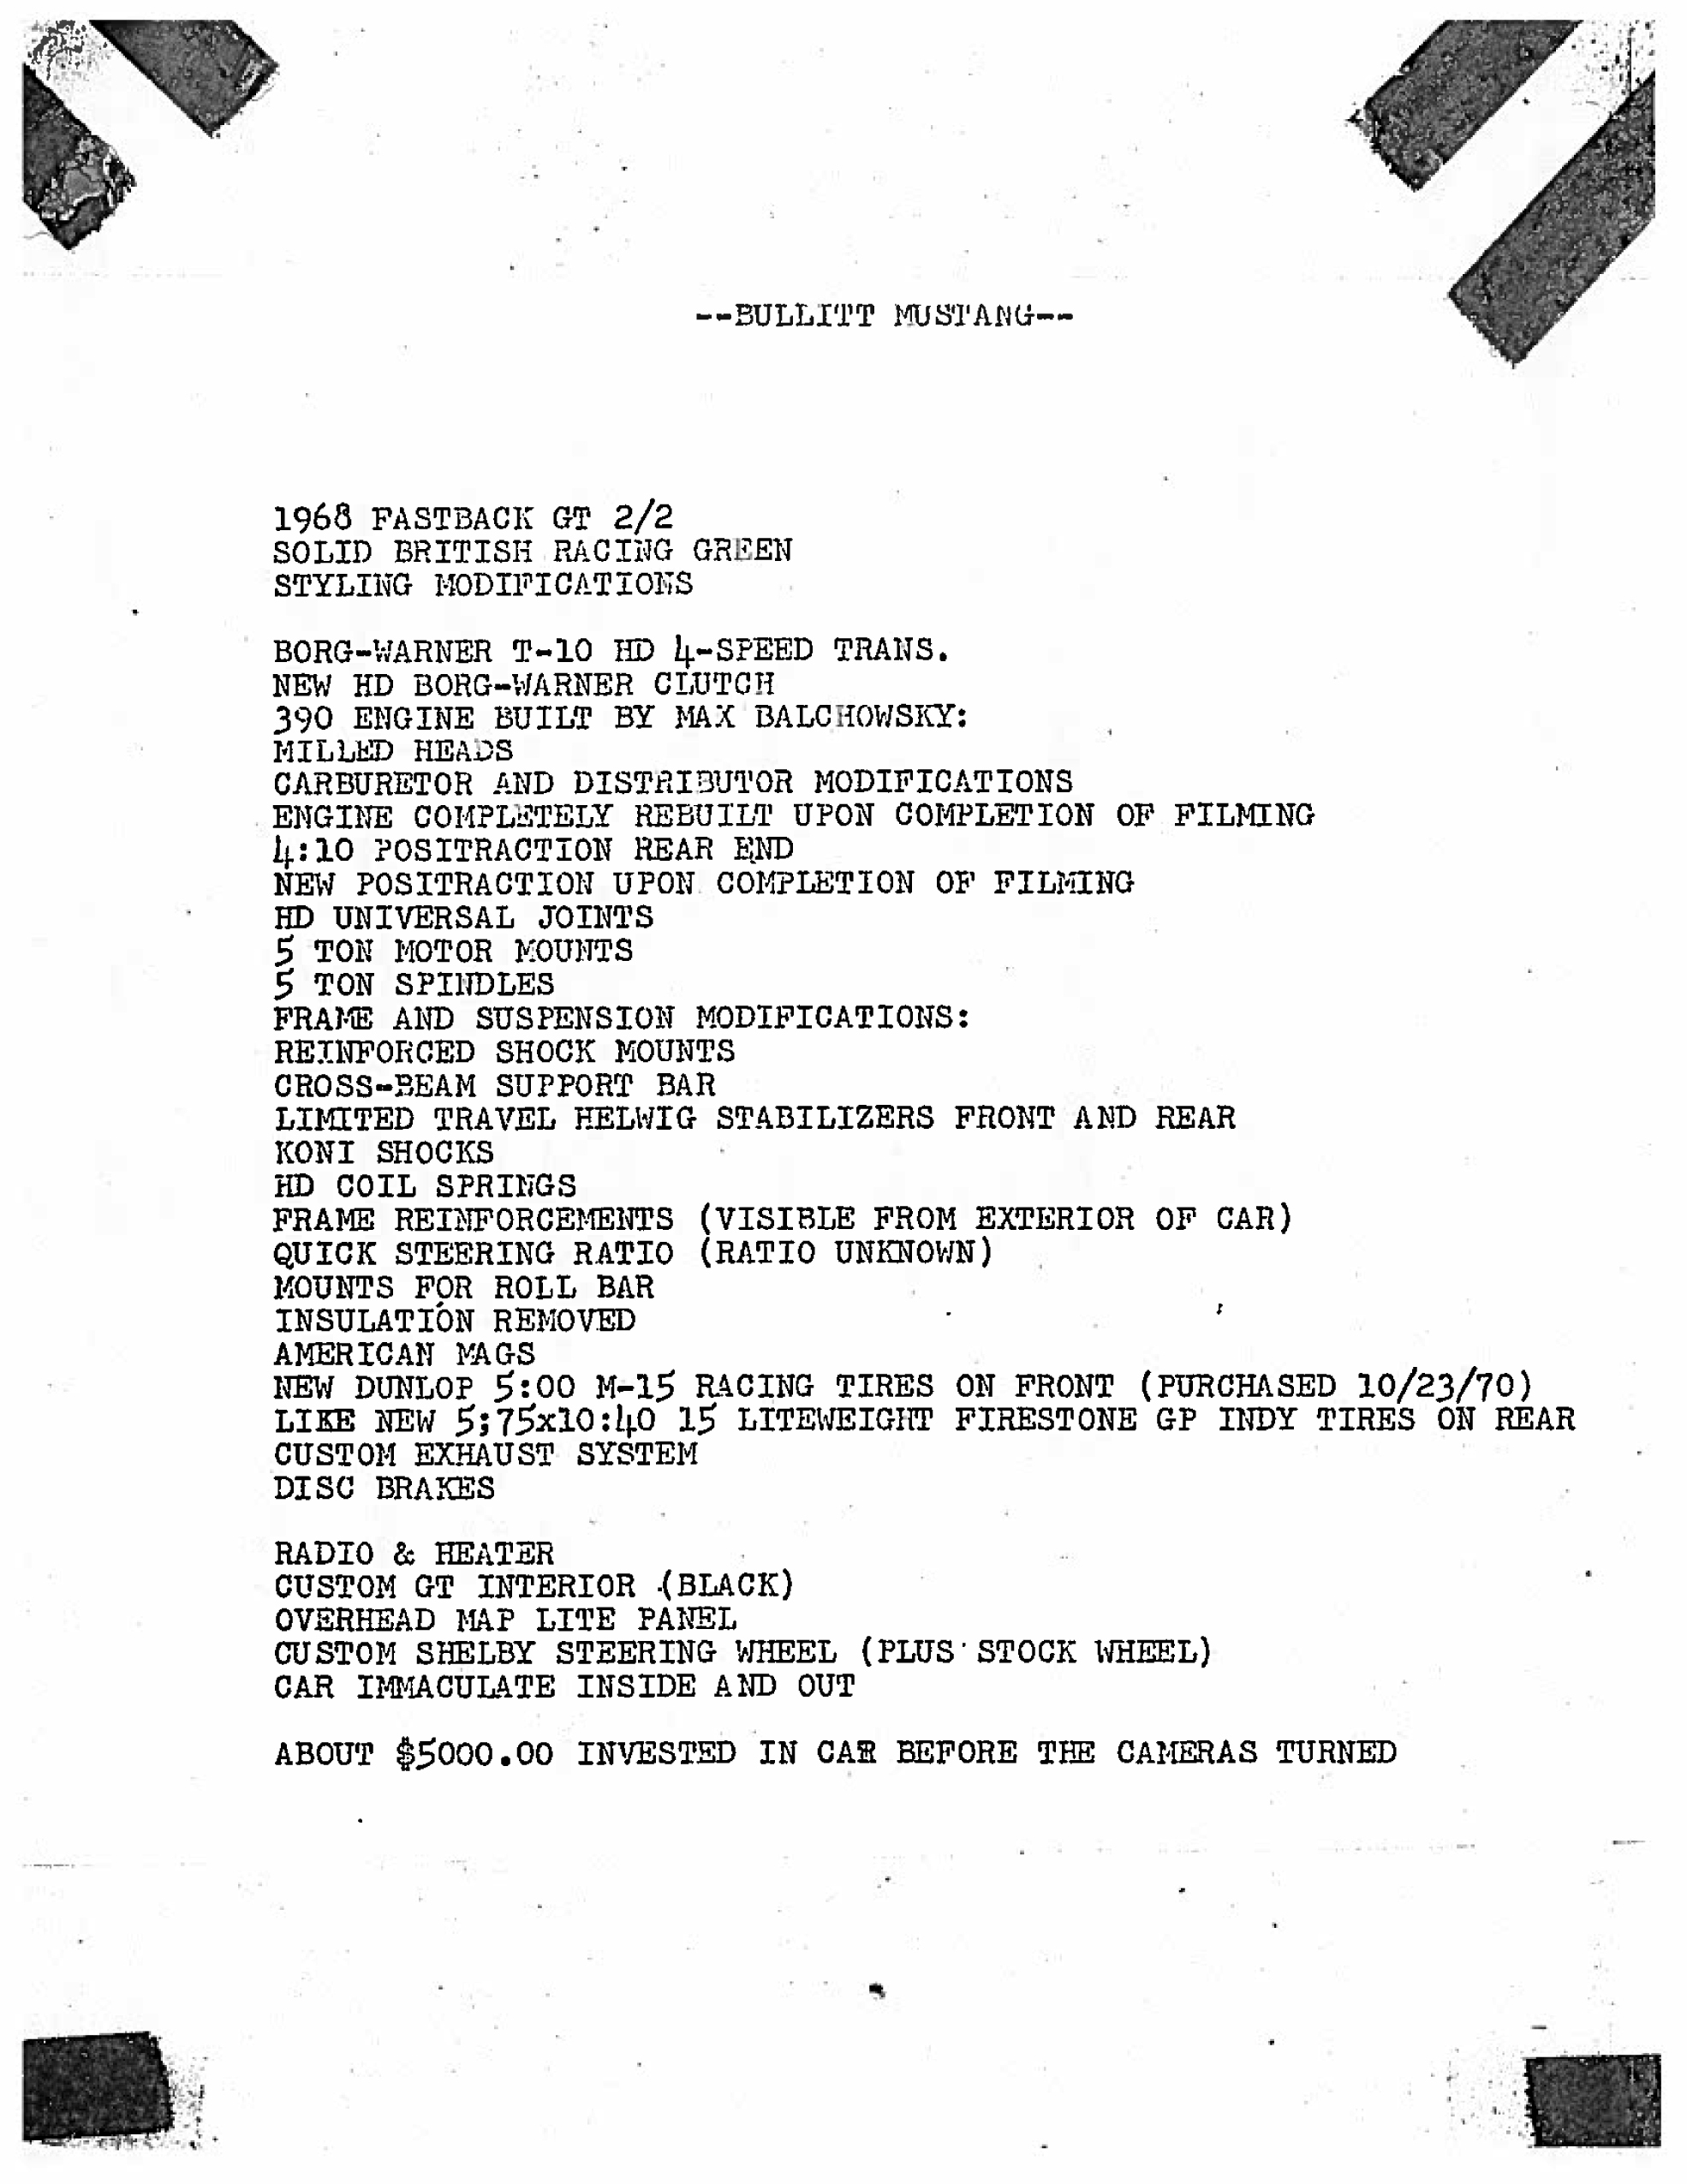 This is the list of features Robert Ross wrote to describe Bullitt #559 when he offered it for sale.  Property Frank Marranca